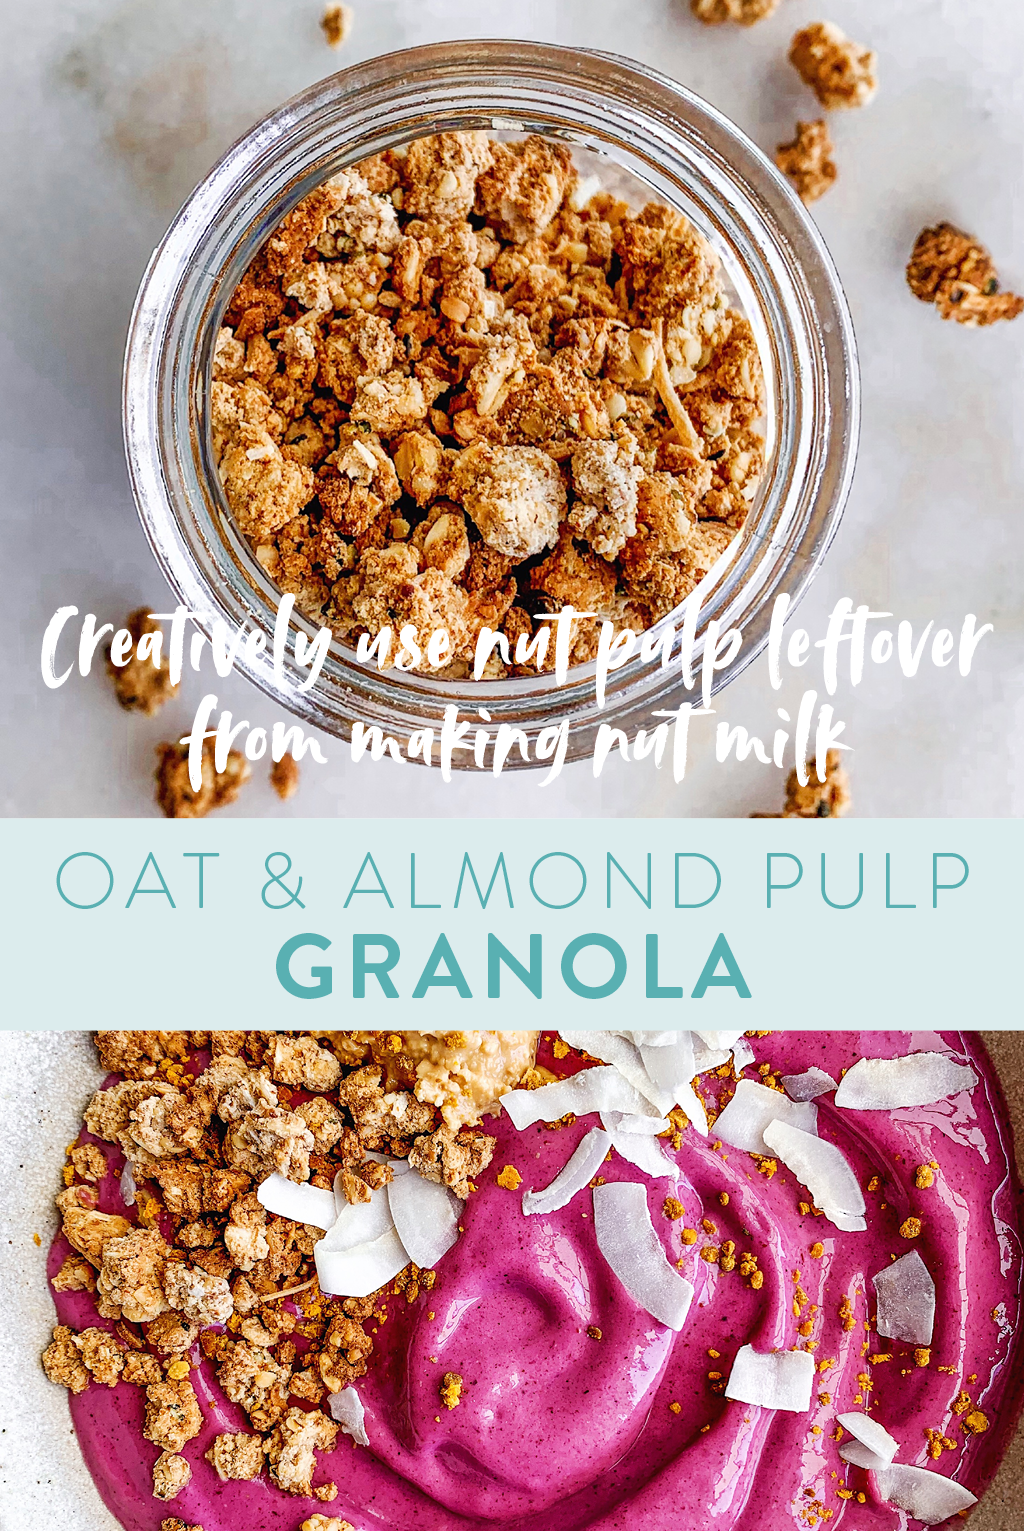 oat and almond pulp granola